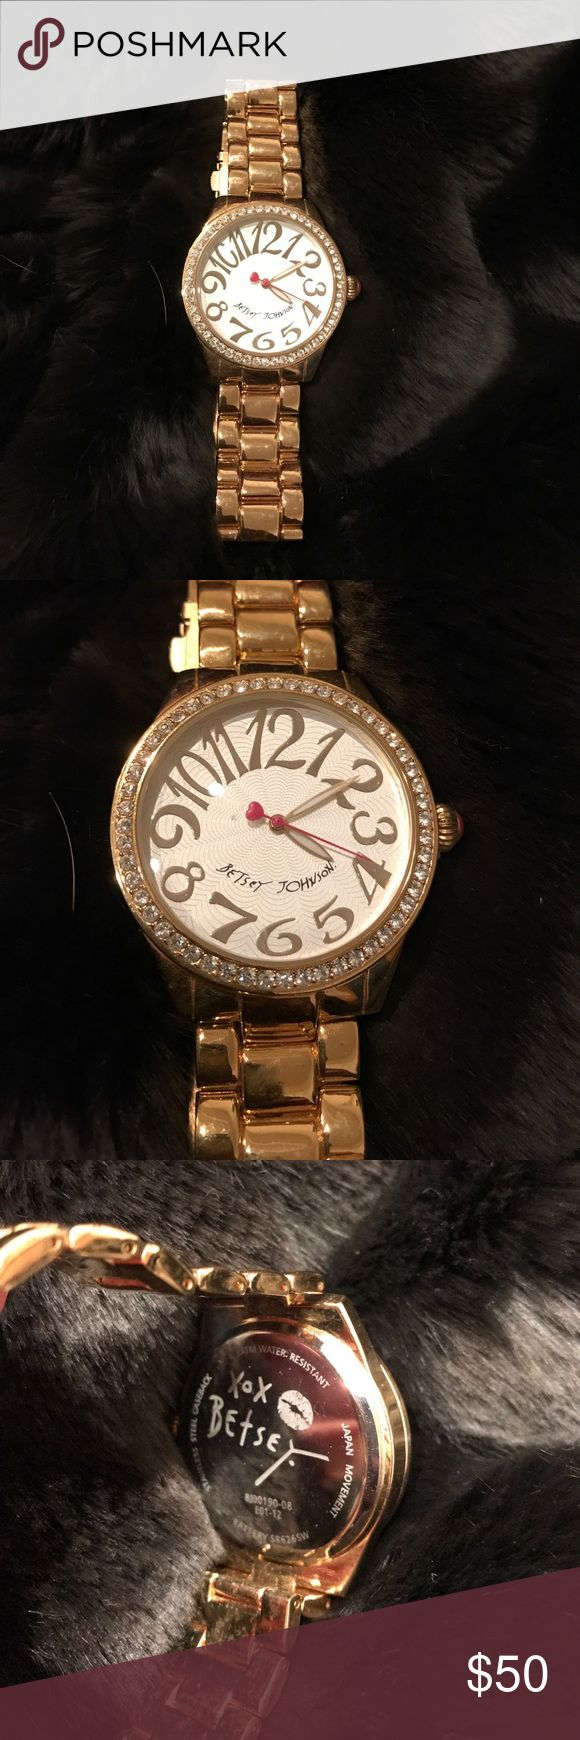 Betsey Johnson Gold BIG face Watch Beautiful big face Betsey Johnson watch with large numbers. Minute dial is hot pink.  Shiny gold with sparkling rhinestones around face.  Only wore once. Have 3 extra links to resize back to original.  Needs battery. Betsey Johnson Accessories Watches